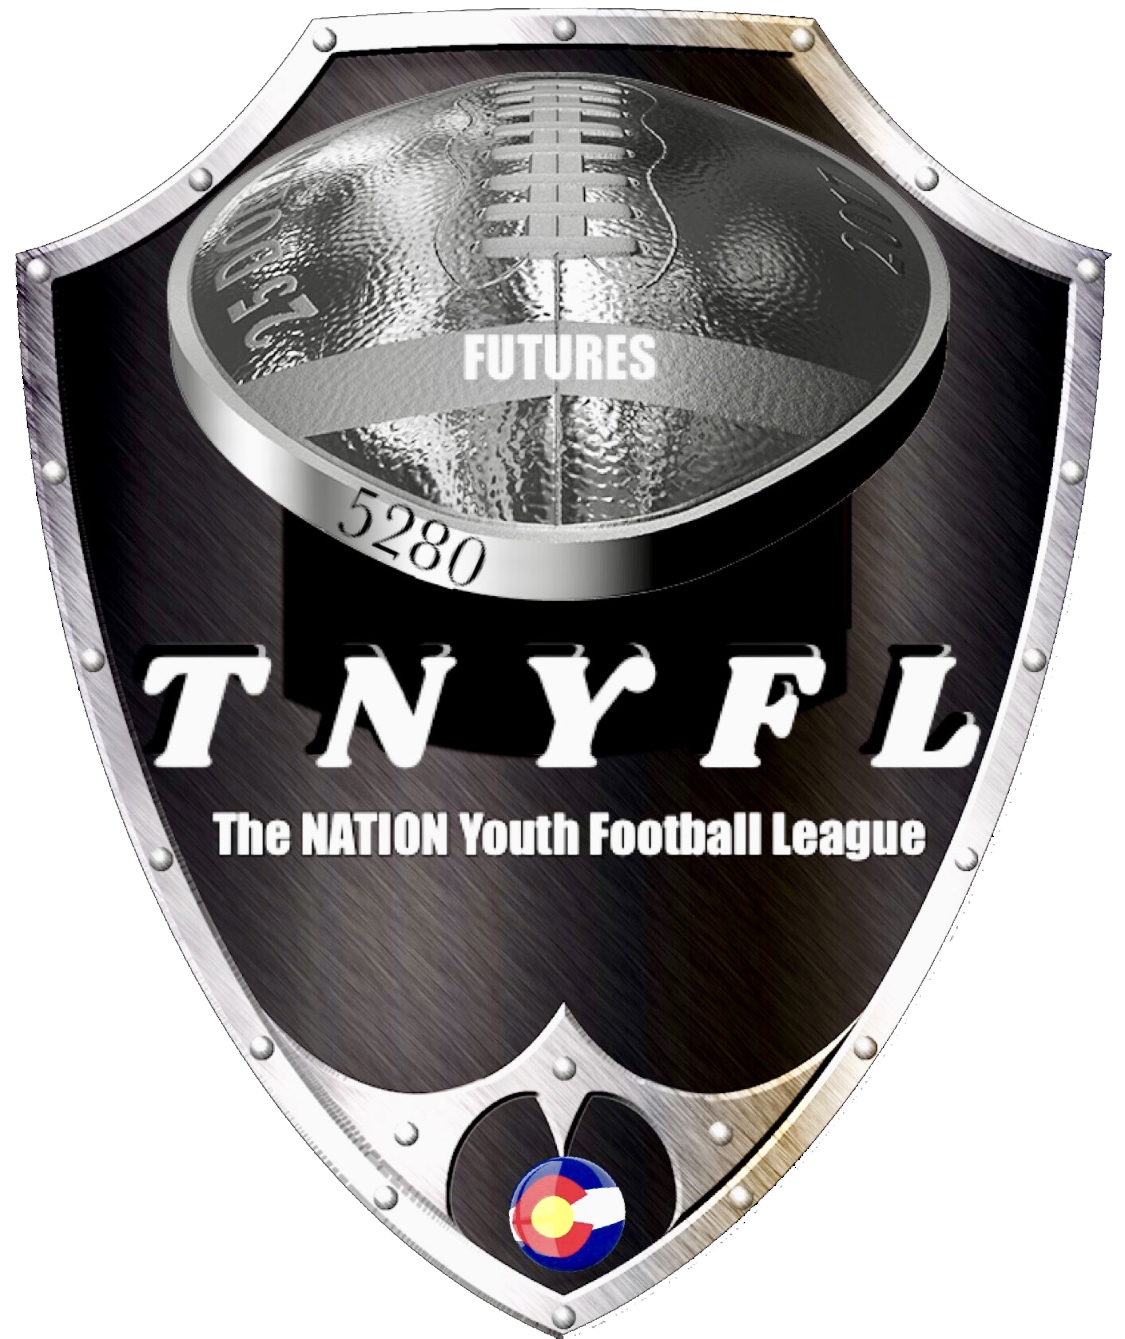 The Nation Youth Football League logo